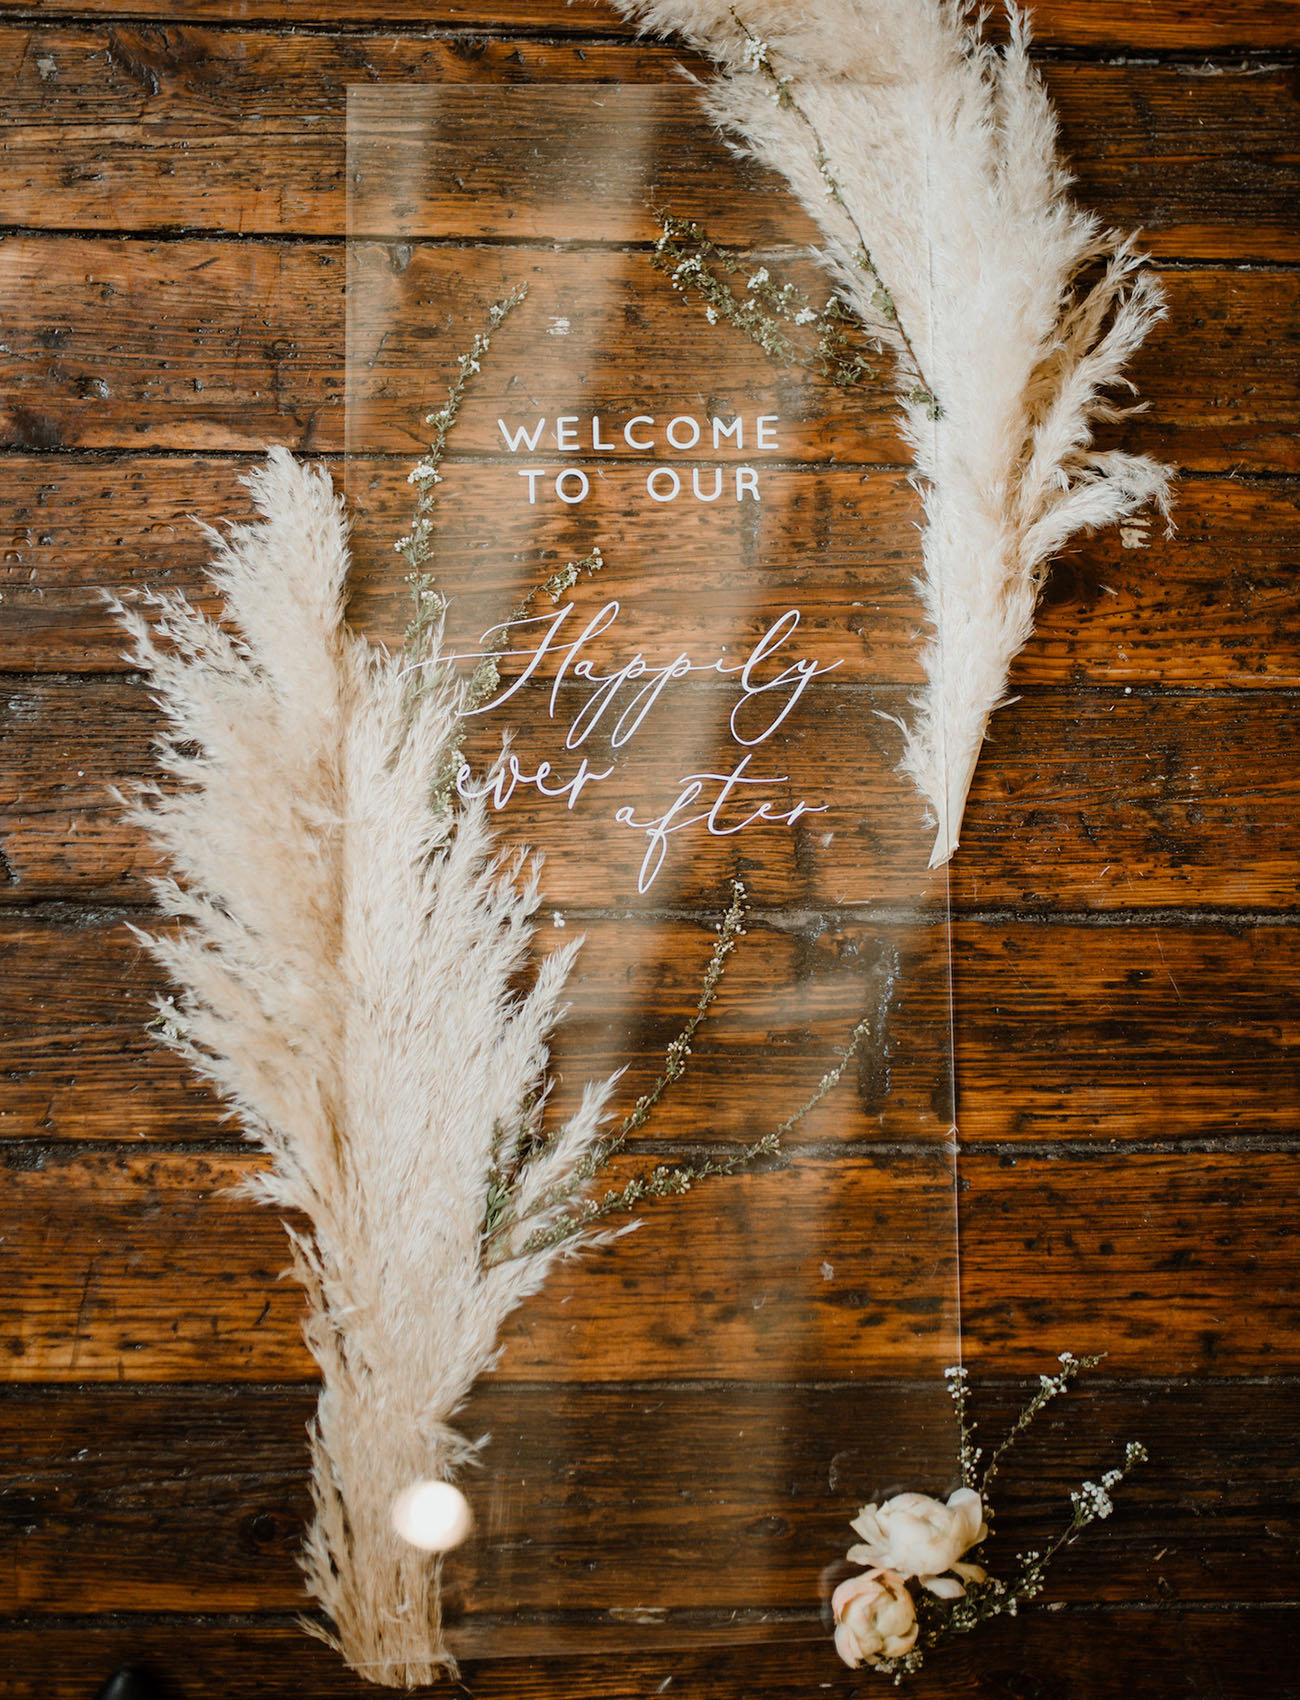 acrylic-wedding-welcome-sign-with-pampas-grass